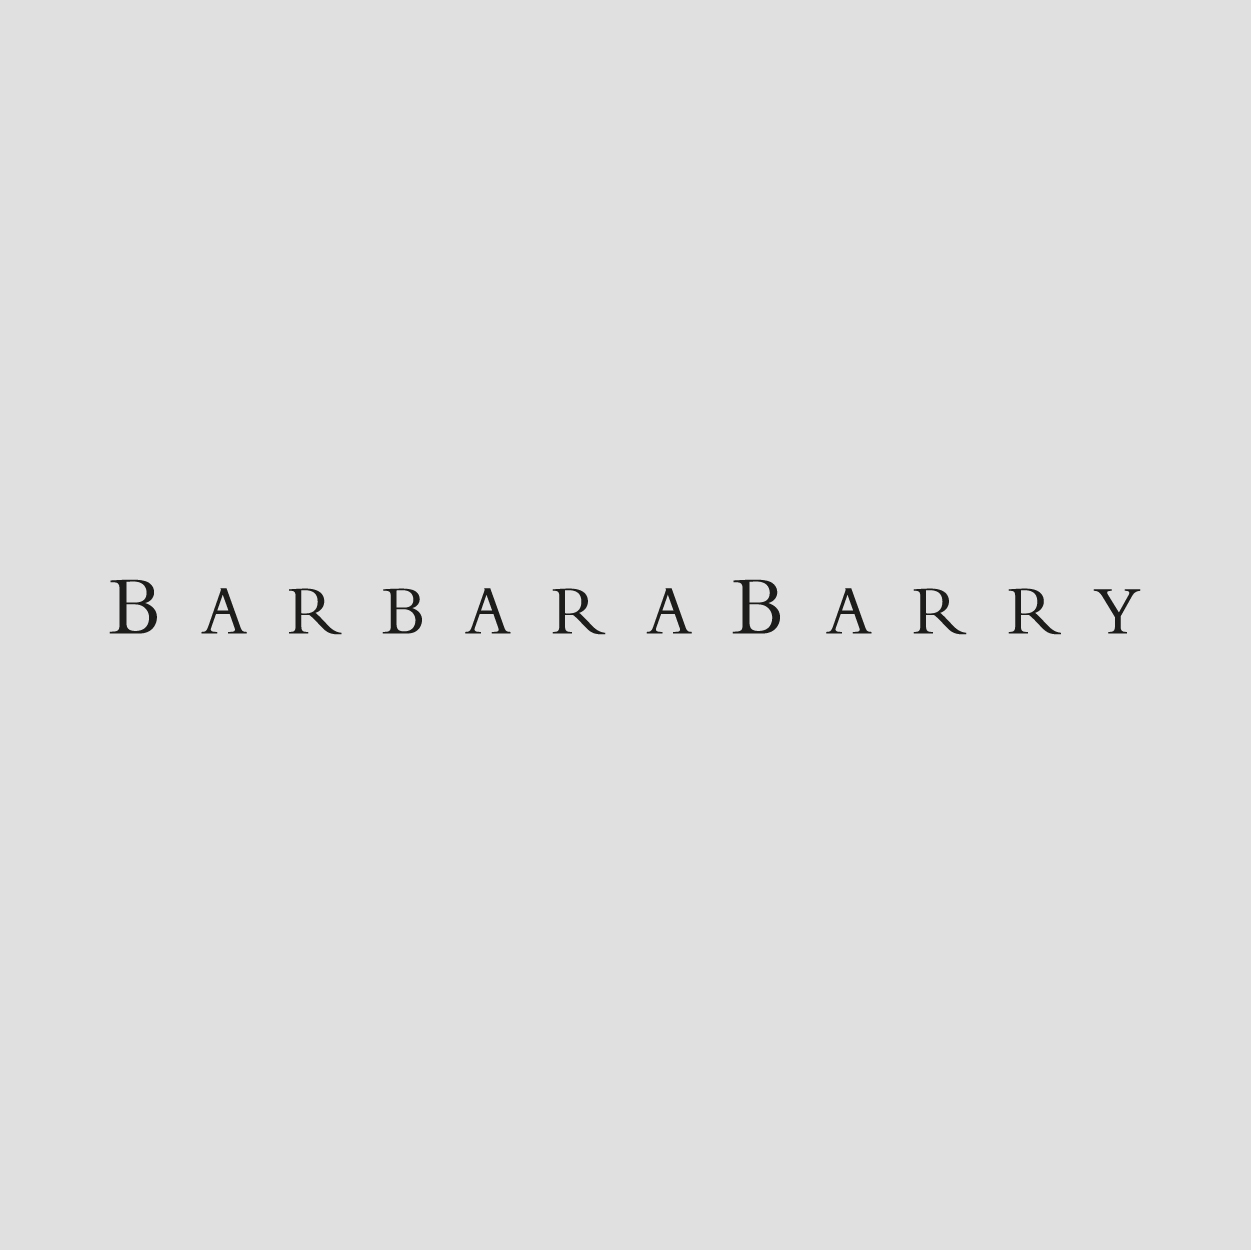 Barbara Barry logo